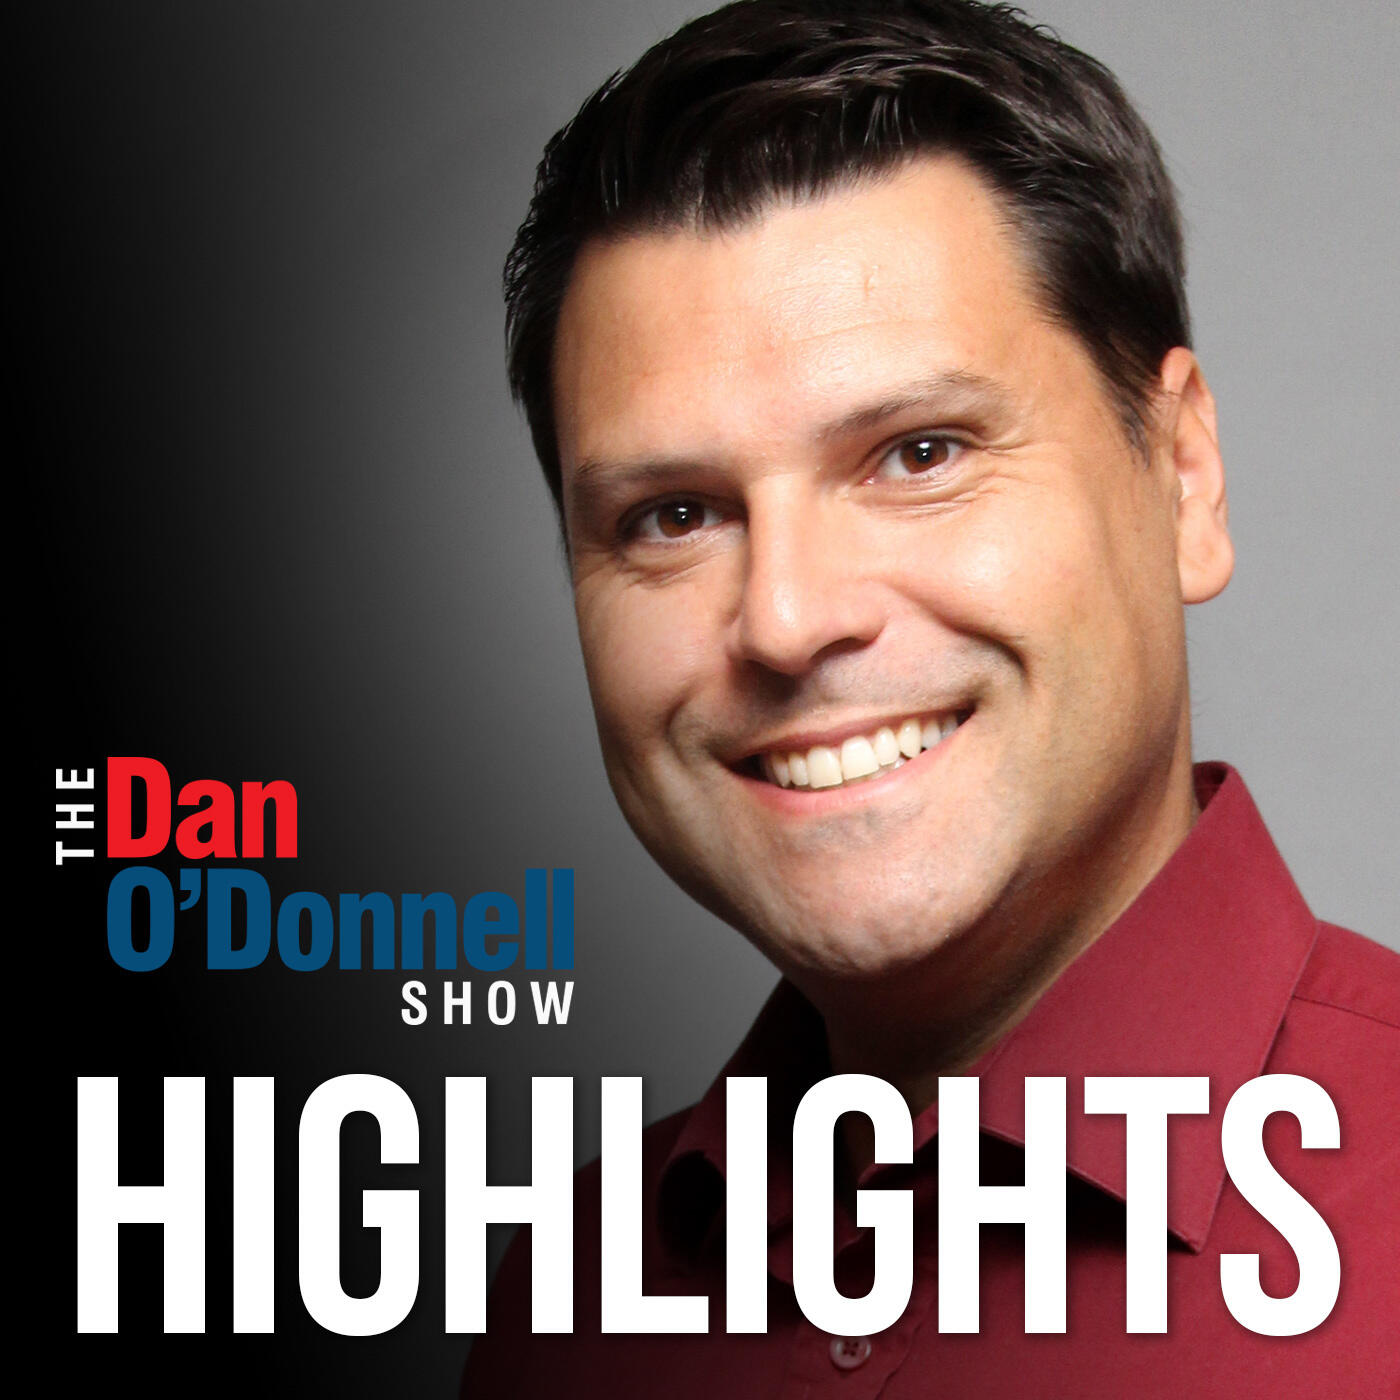 Dan O'Donnell Highlights